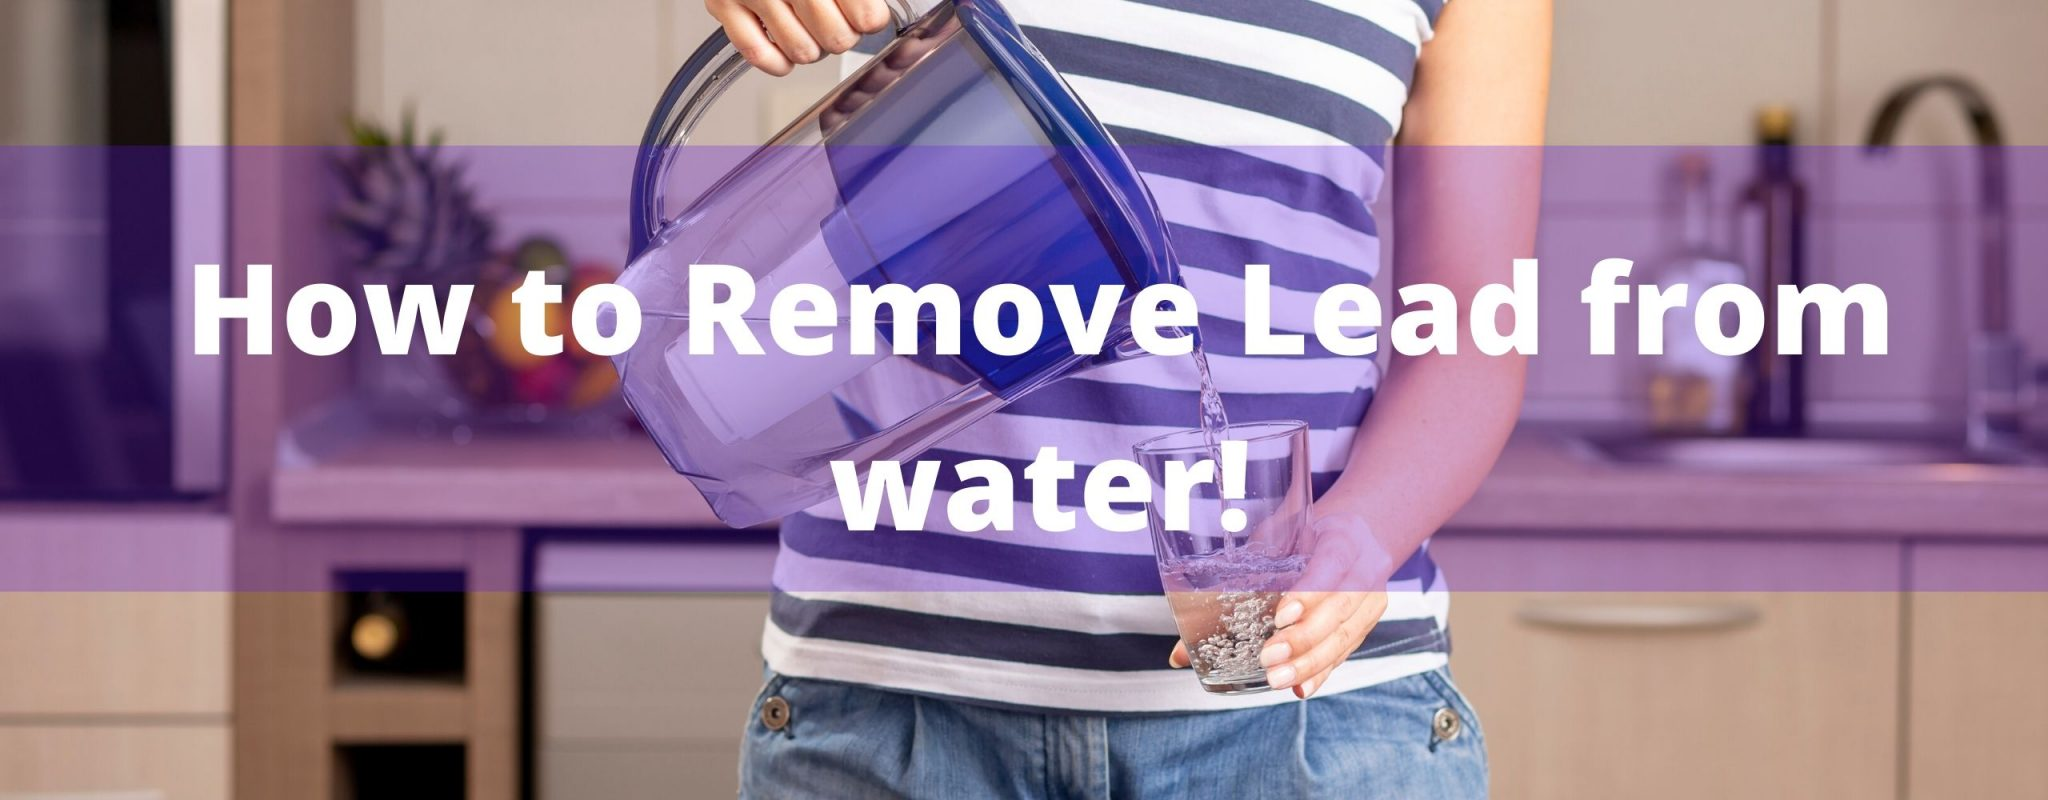 Remove lead from water